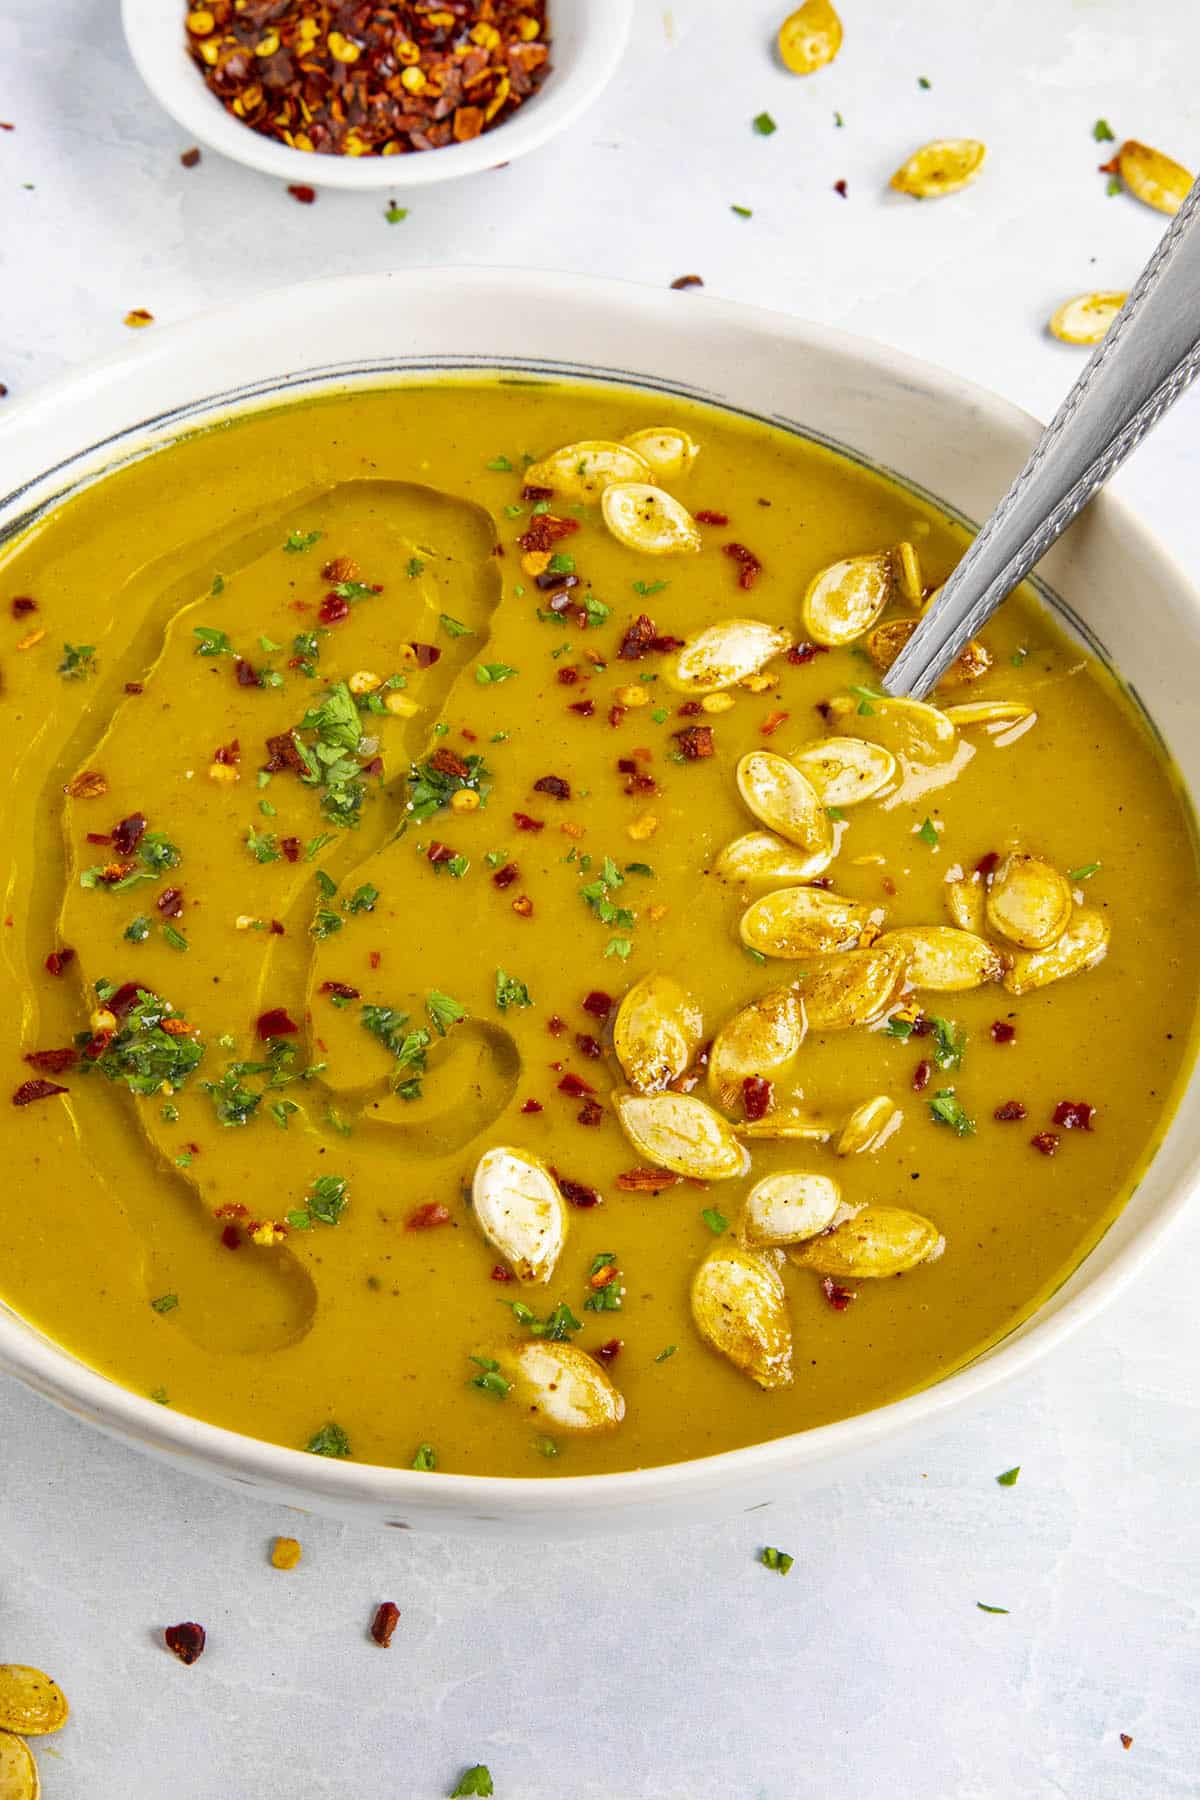 Spicy Pumpkin Soup in a bowl, ready to serve